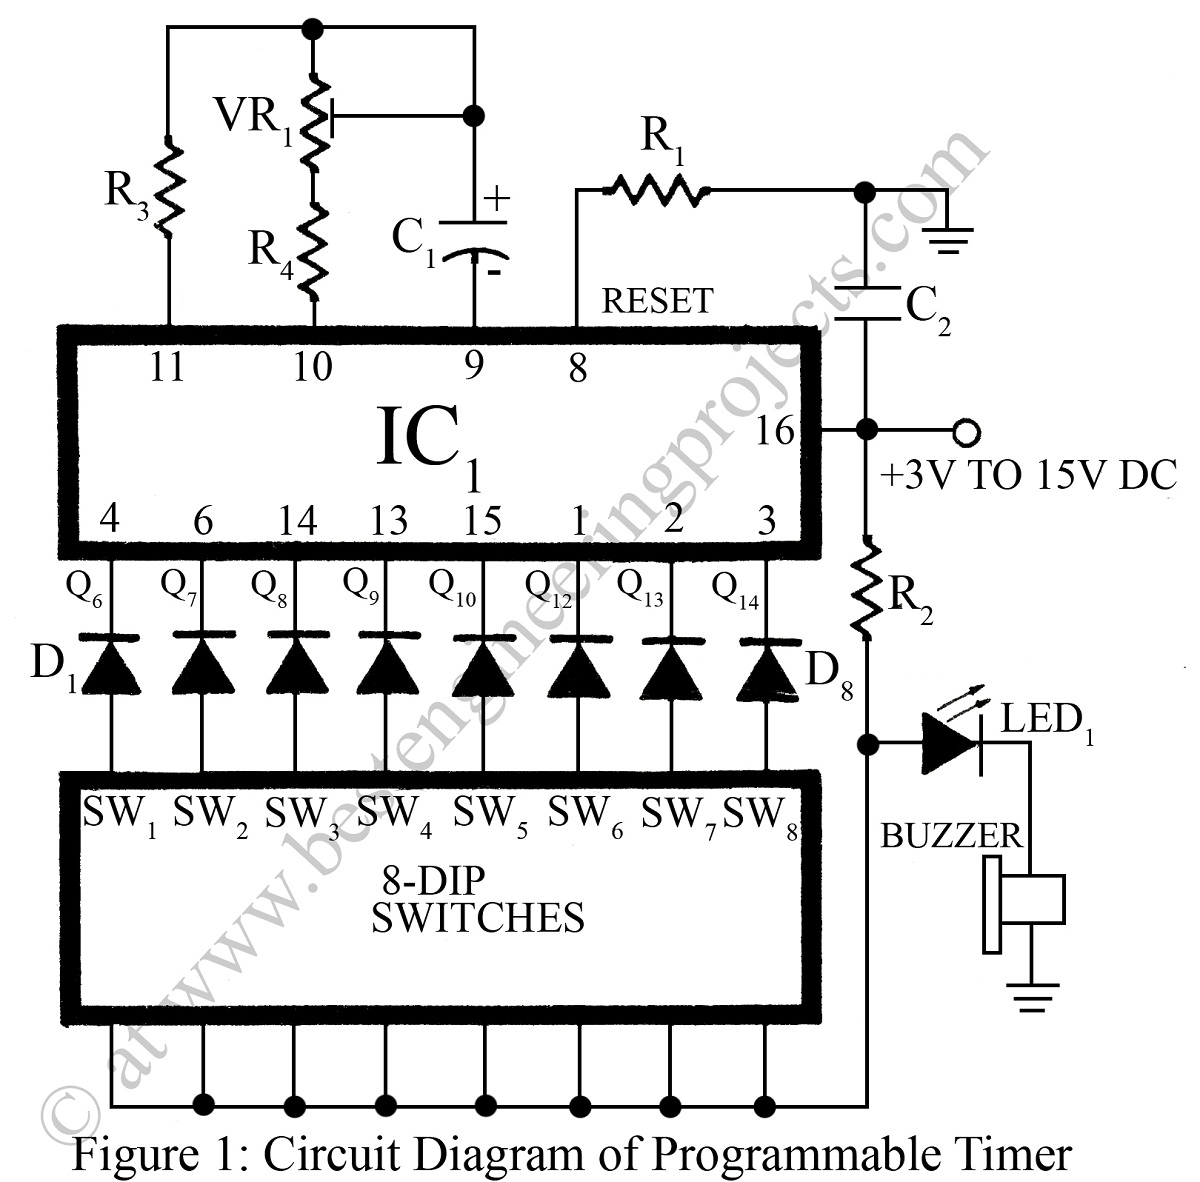 6 Hour Timer Circuit Diagram Wiring Diagrams Time Delay Based Projects Best Engineering